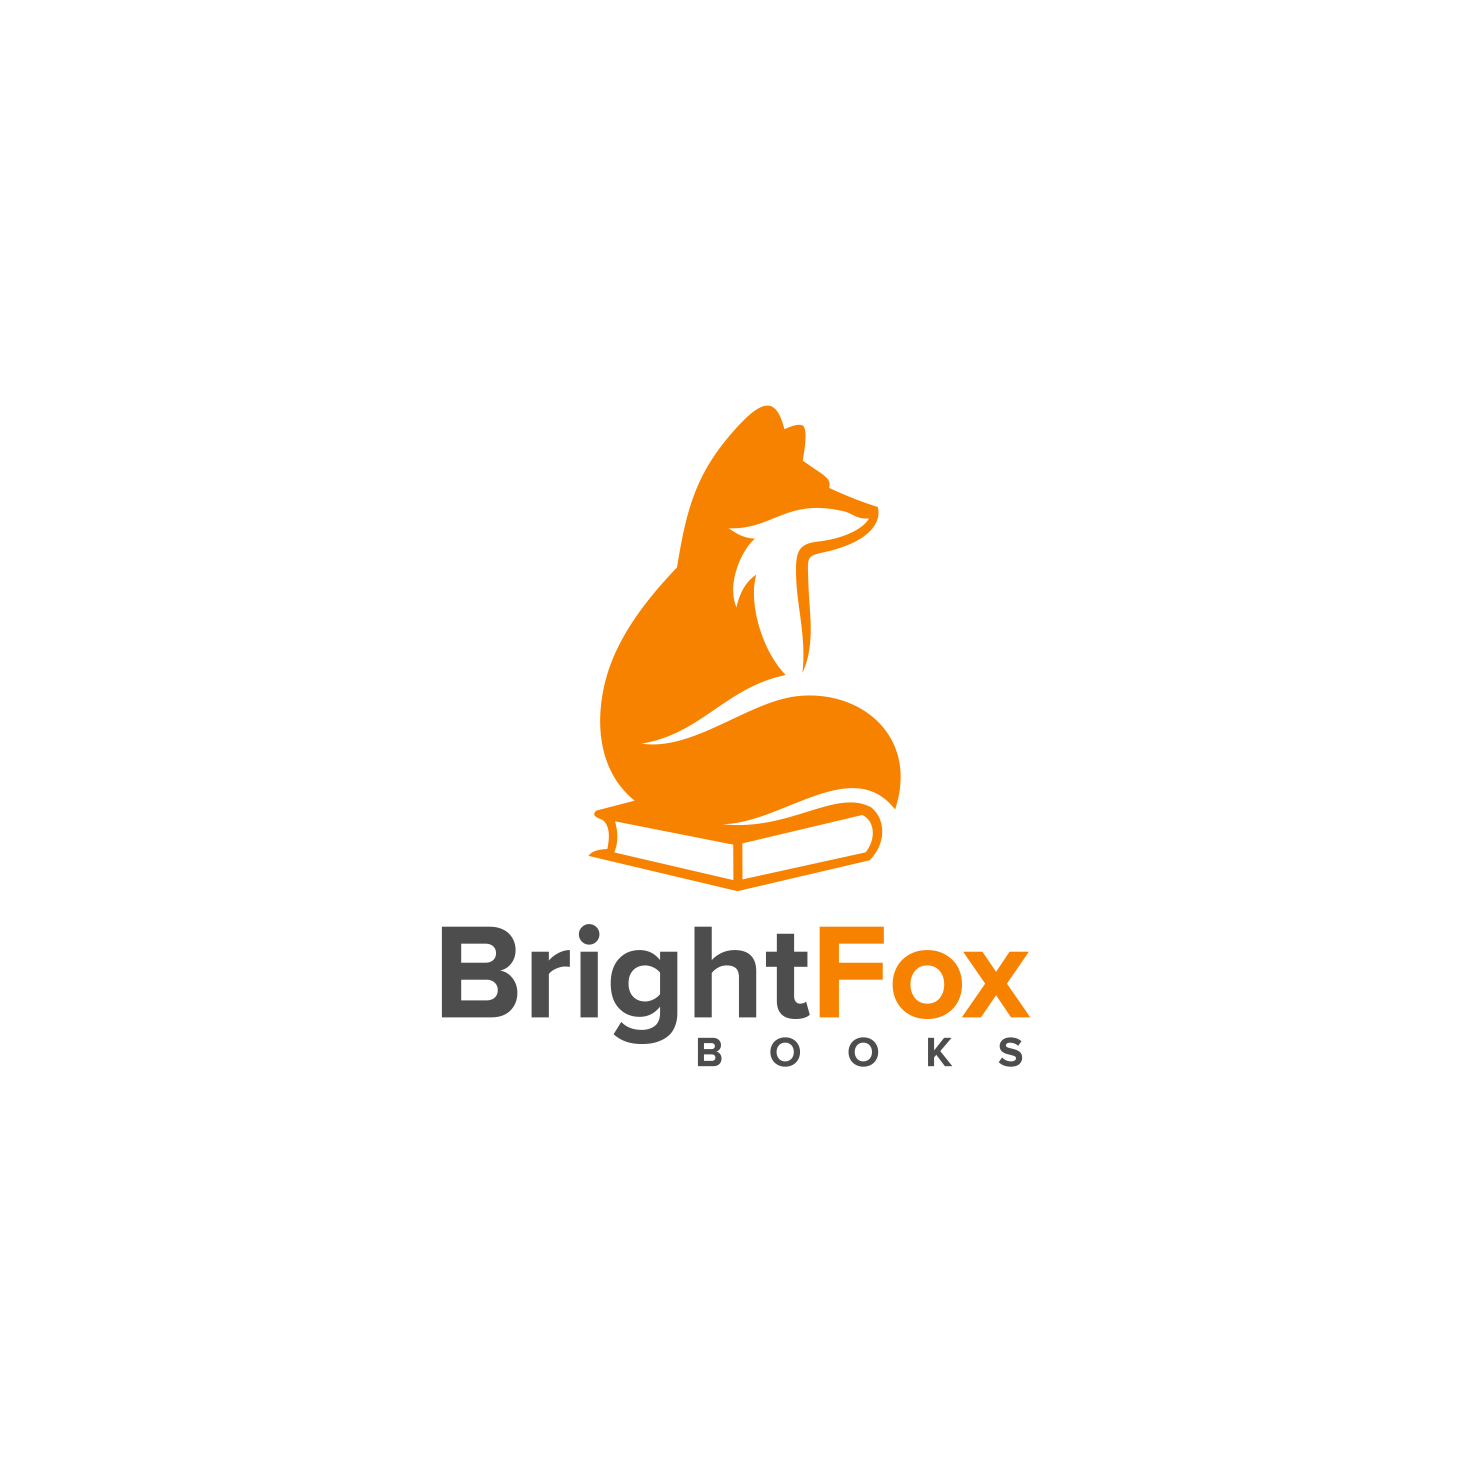 Grab readers for Bright Fox Books with a simple but powerful logo.